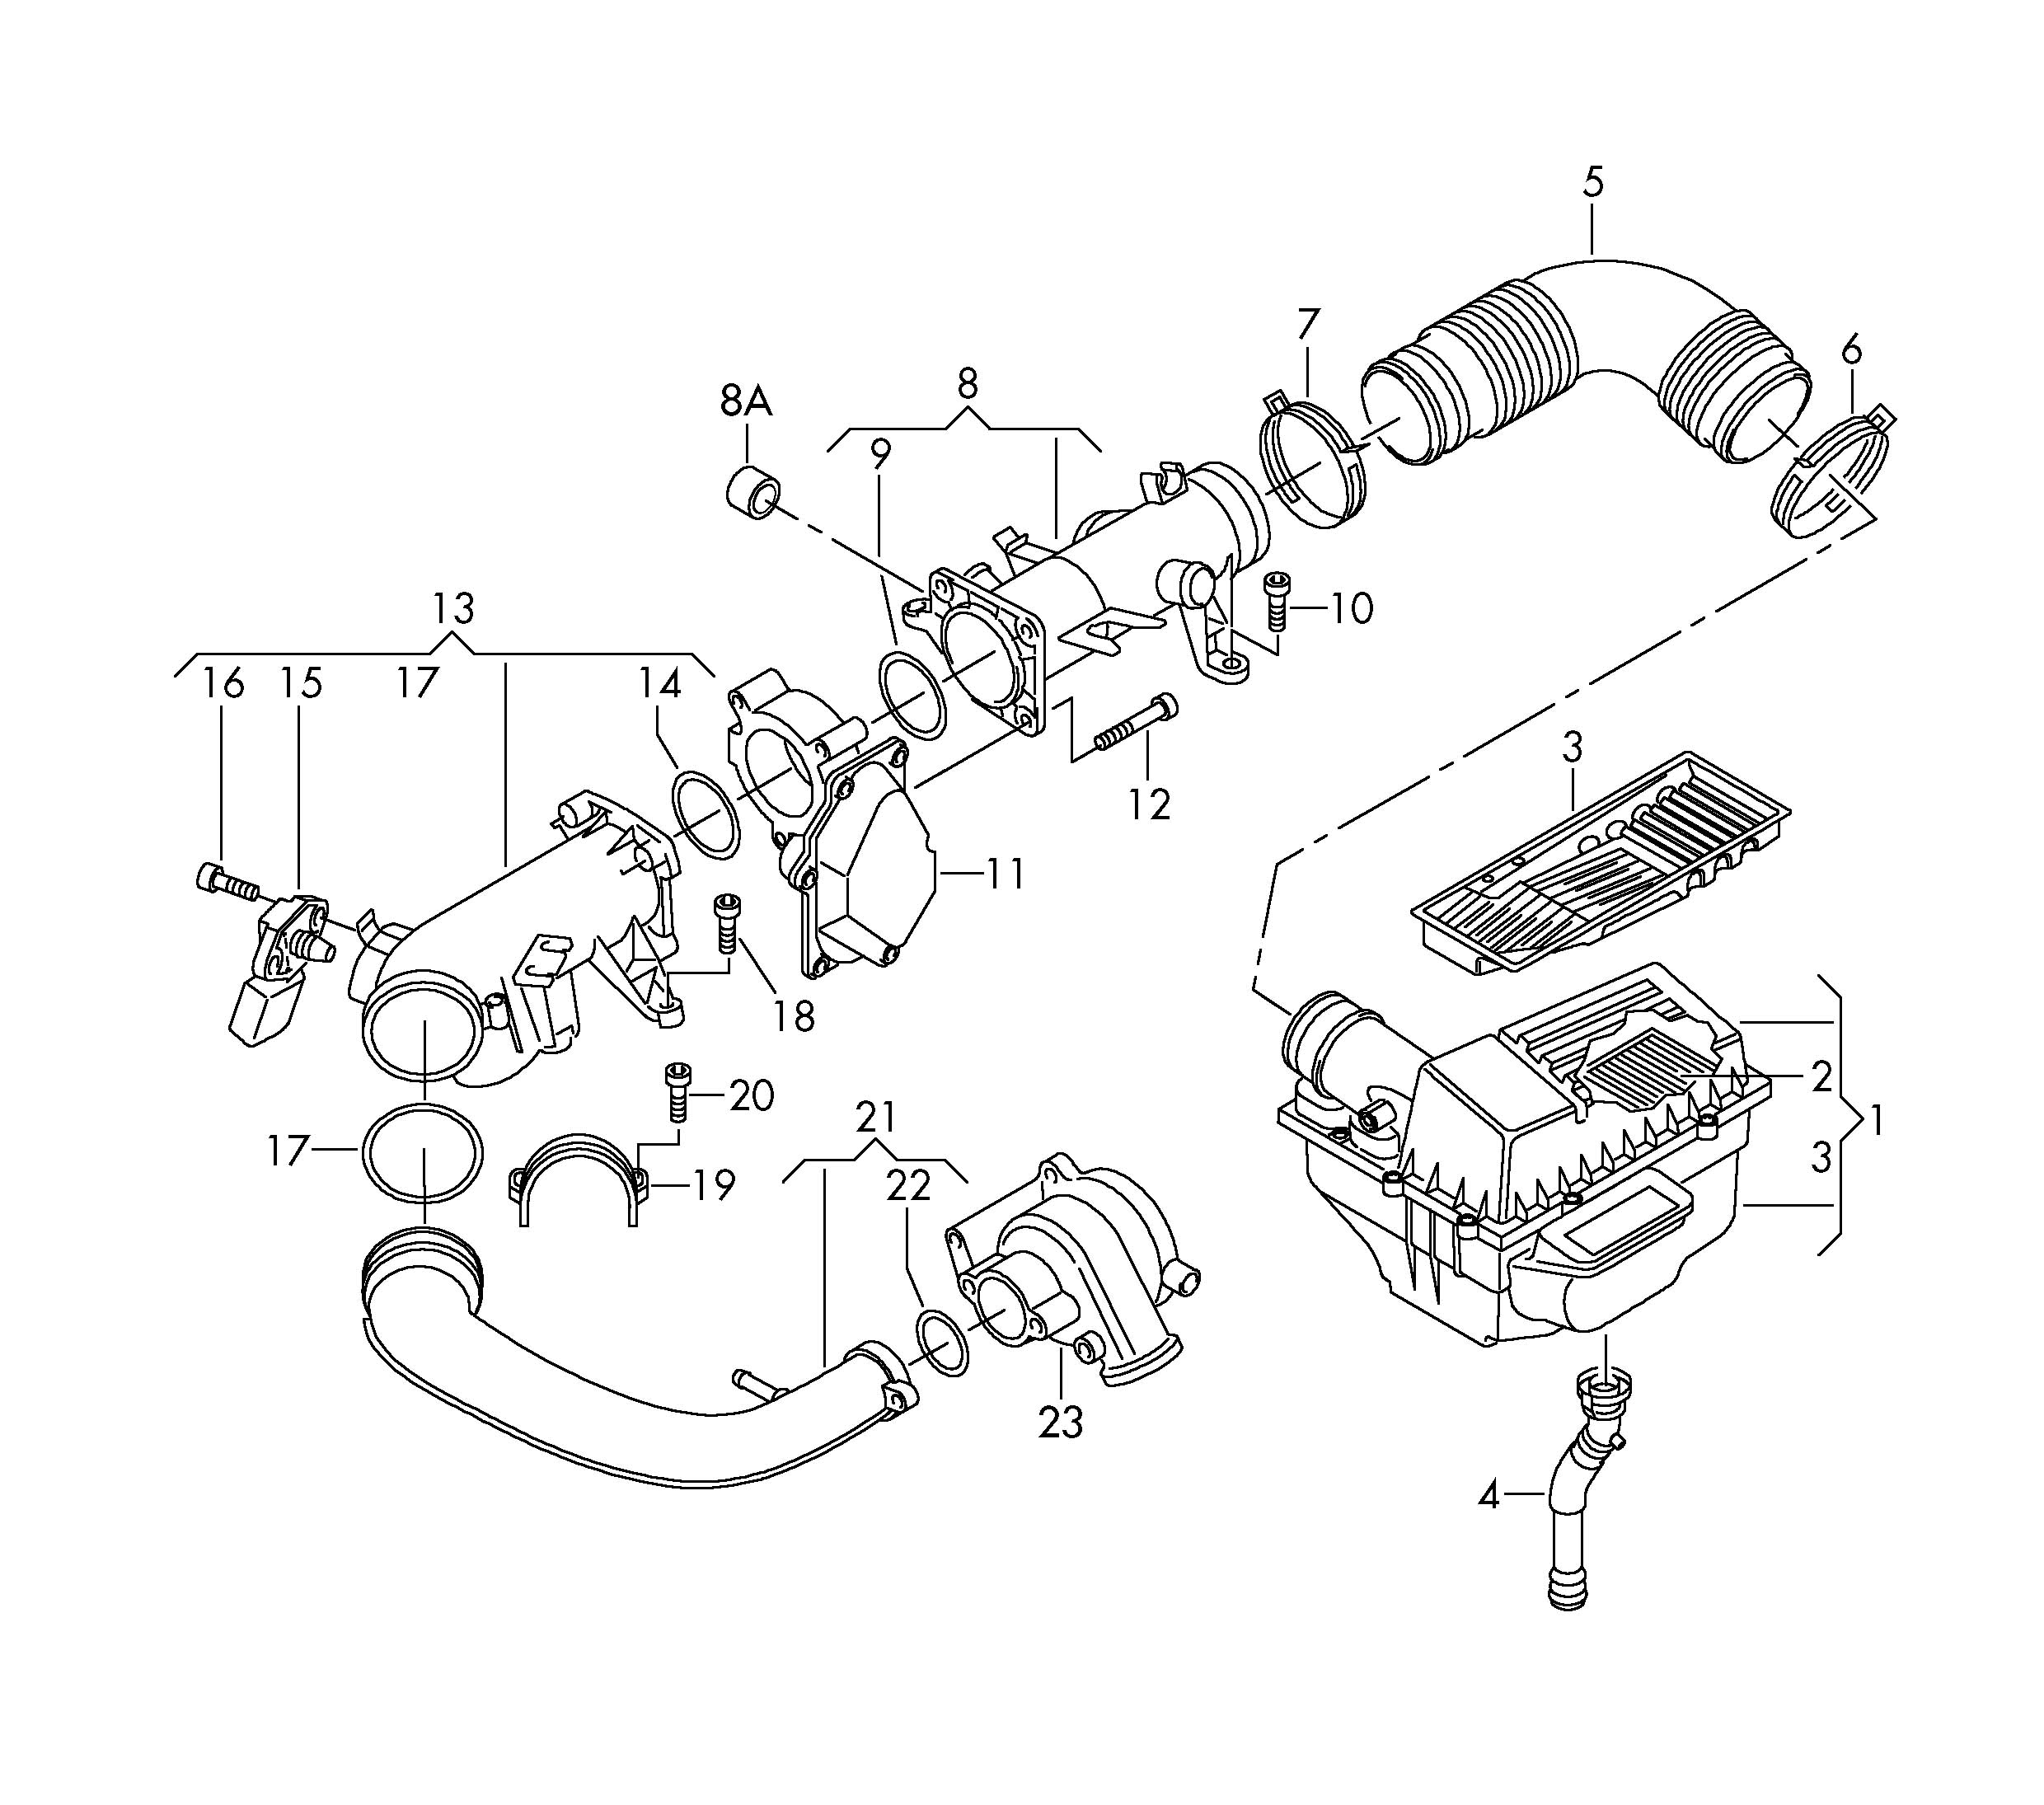 Volkswagen Golf Air Cleaner With Connecting Parts 1 4ltr